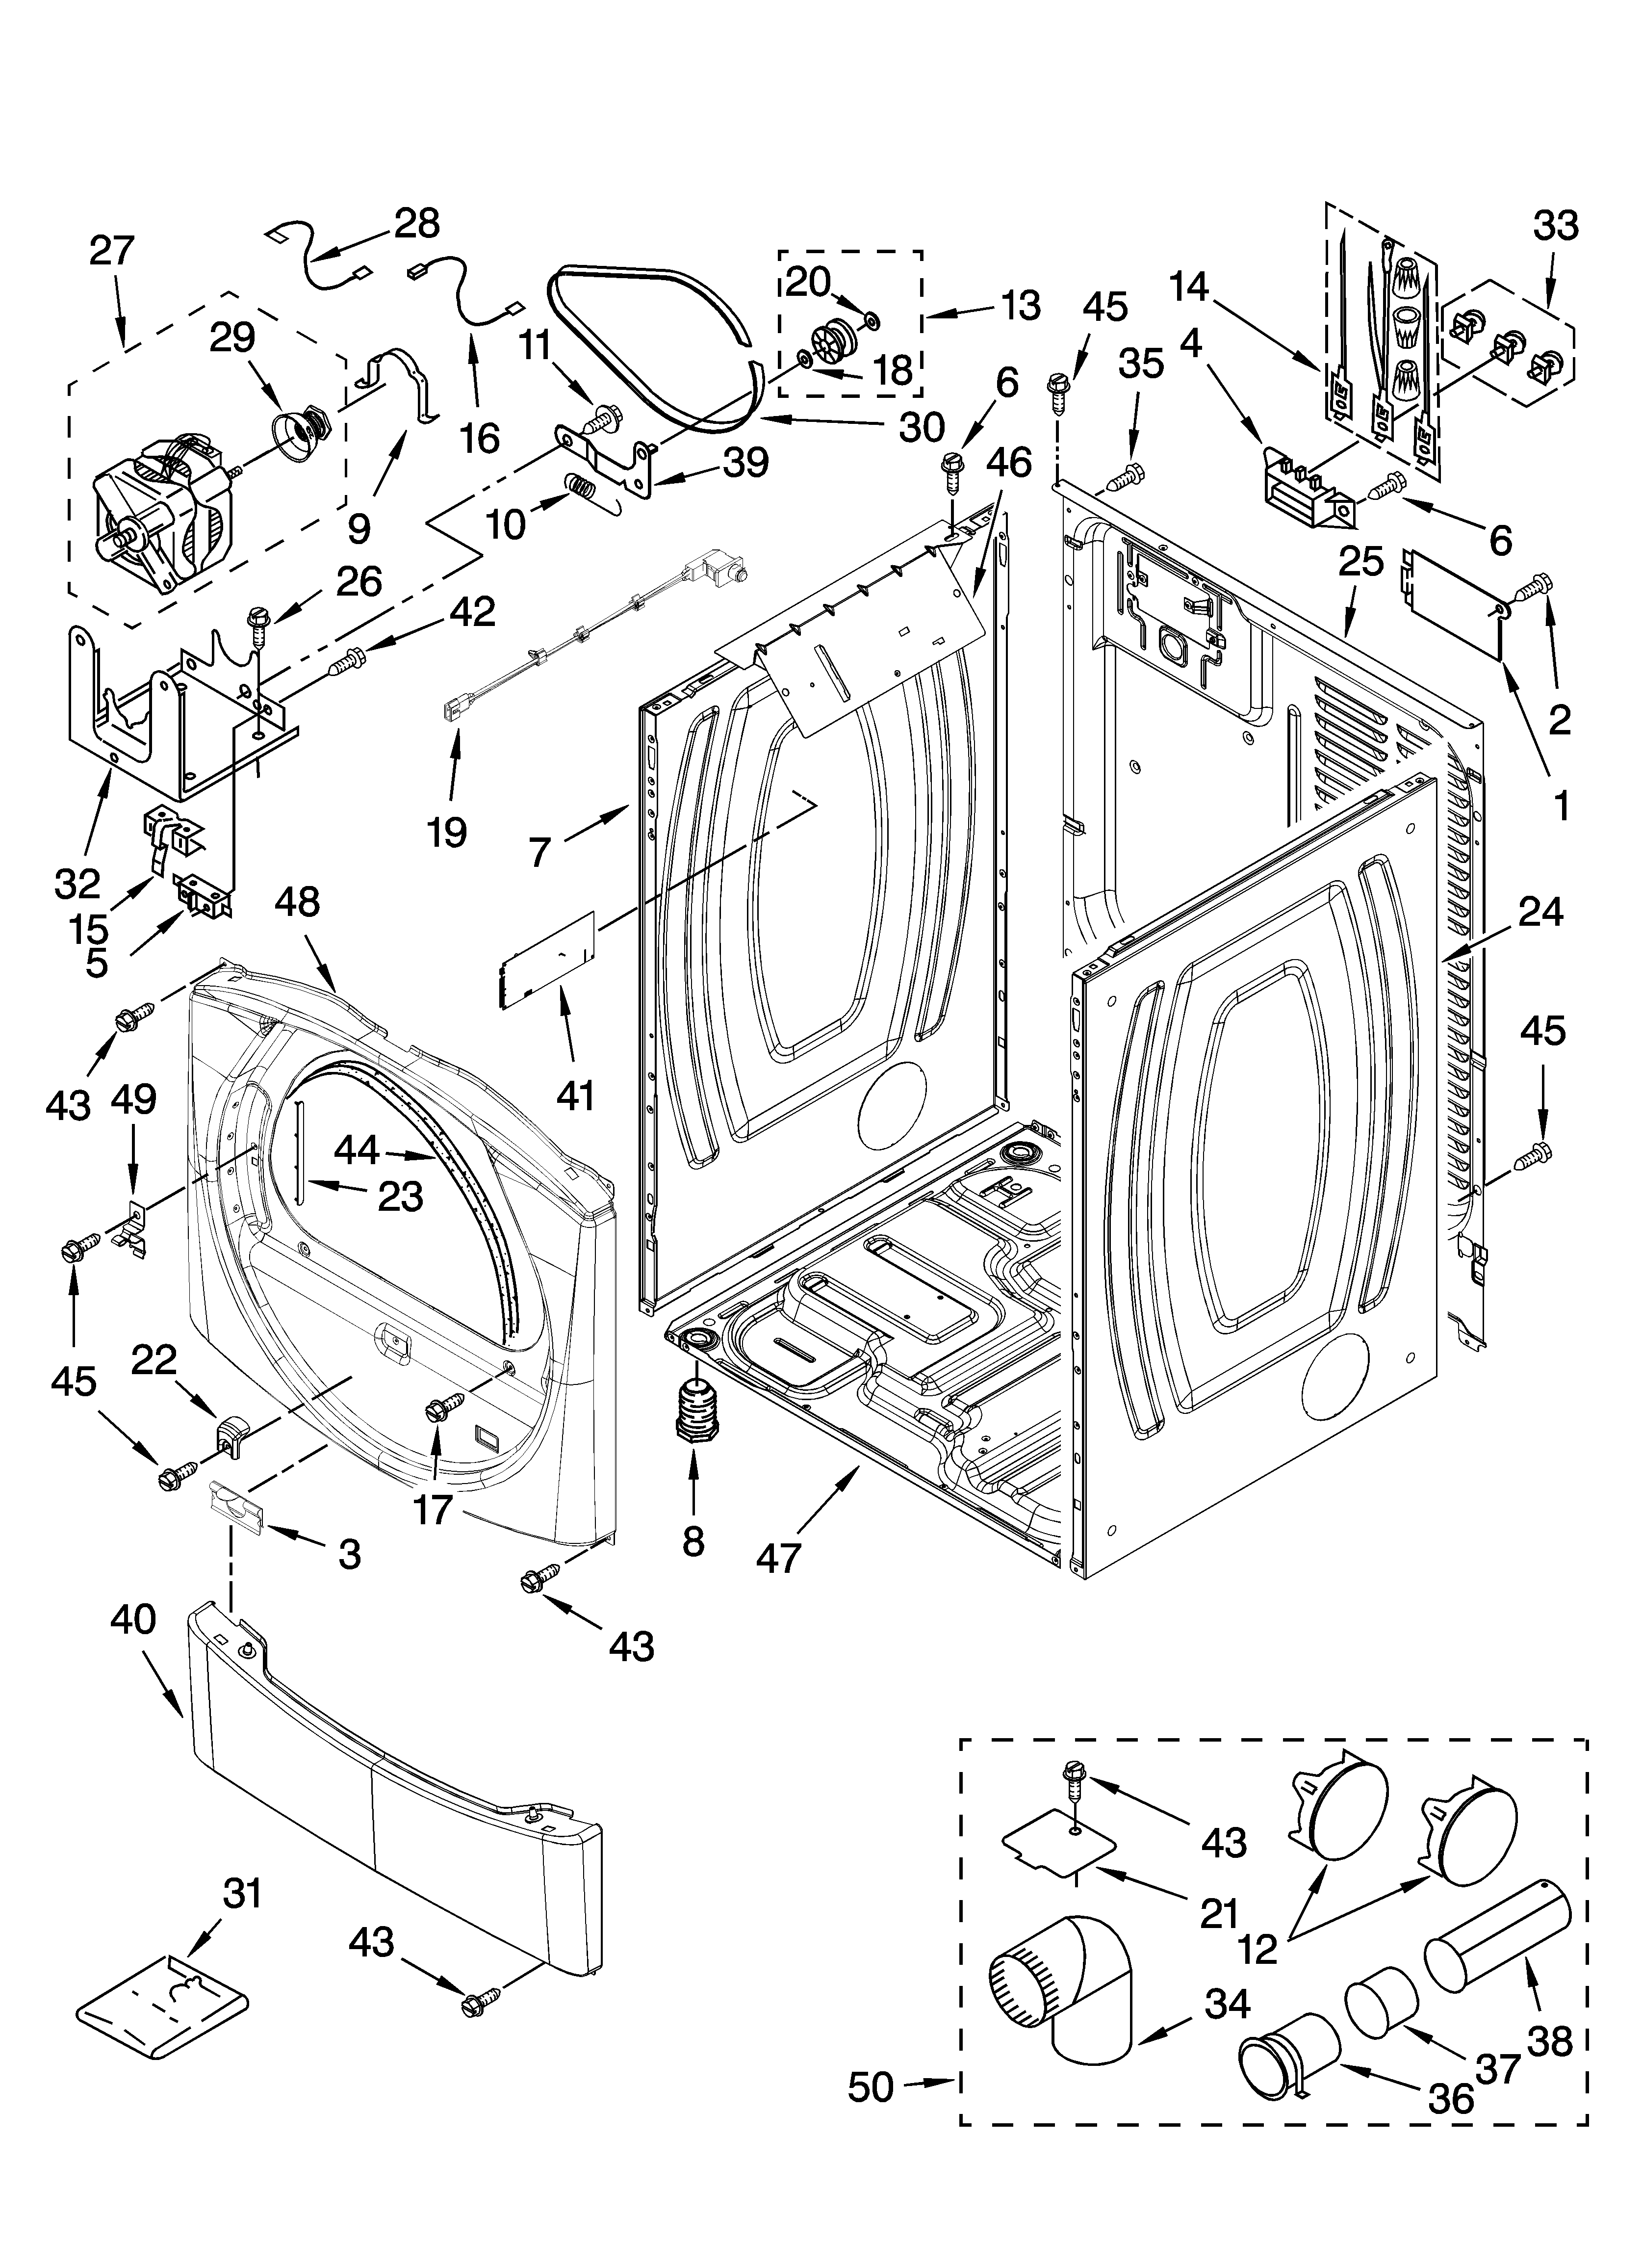 Whirlpool WED8300SW2 cabinet parts diagram